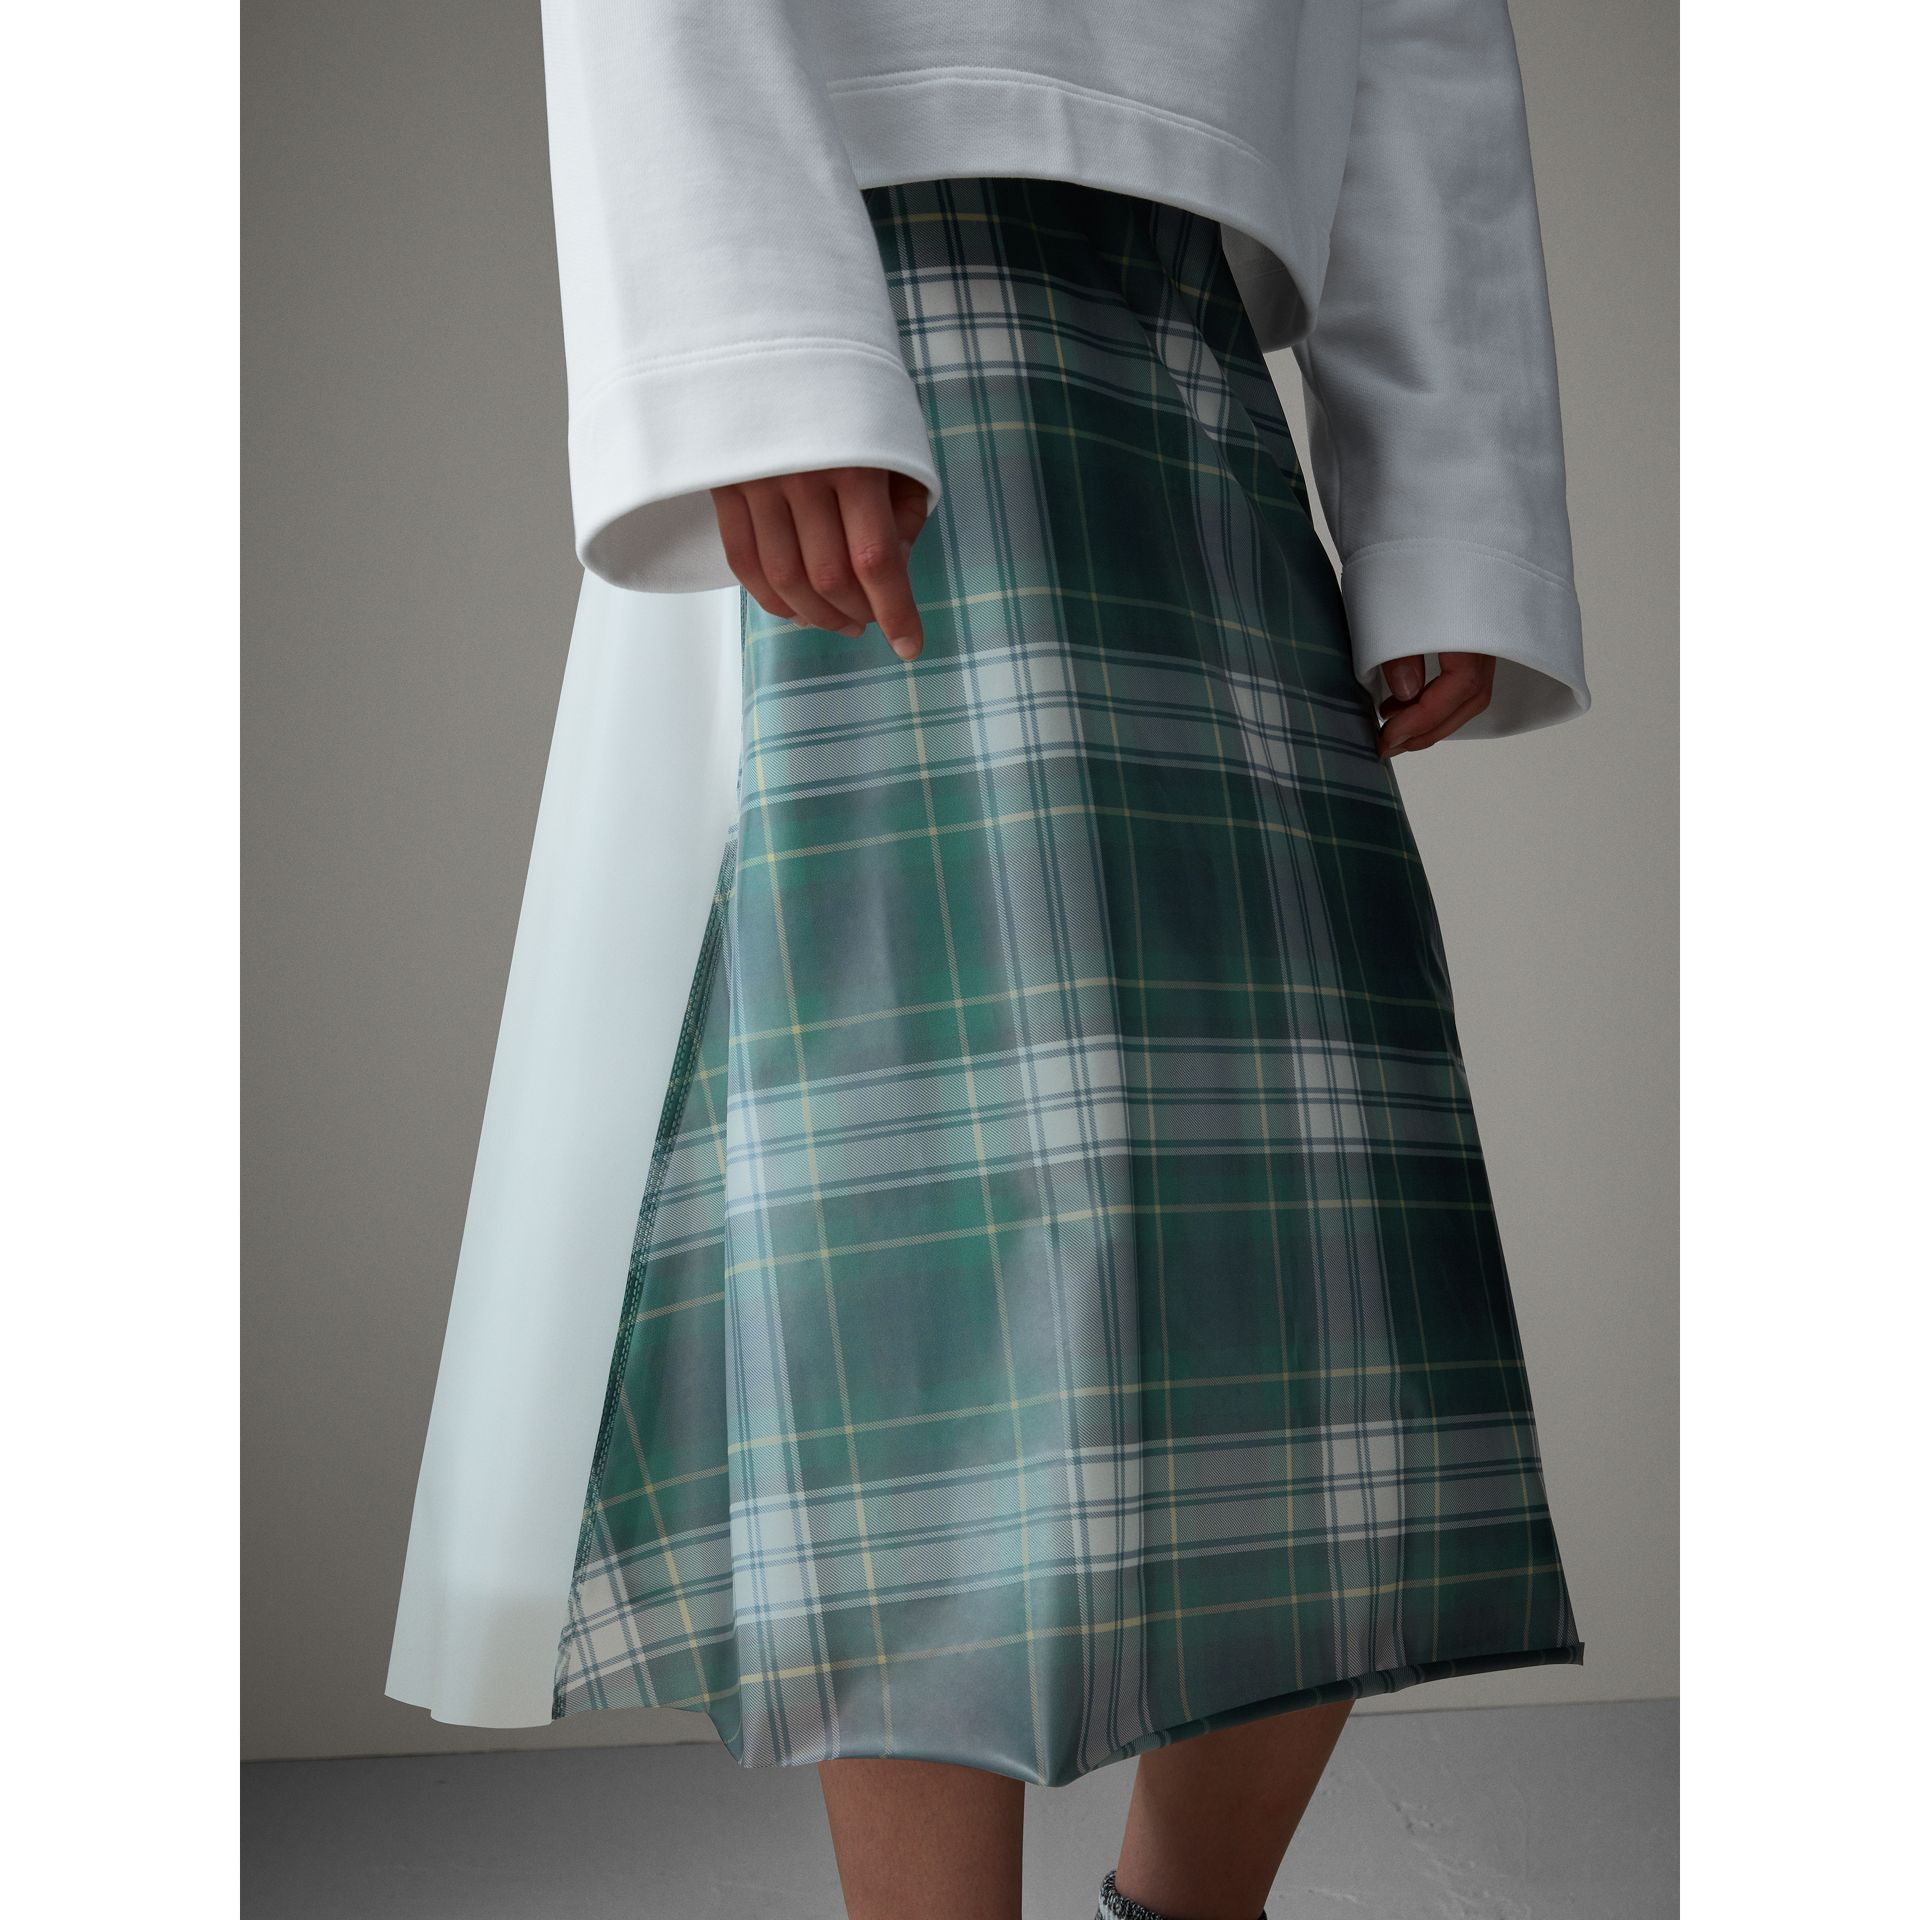 Silk-lined Tartan Plastic A-line Skirt in Green - Women | Burberry - gallery image 2